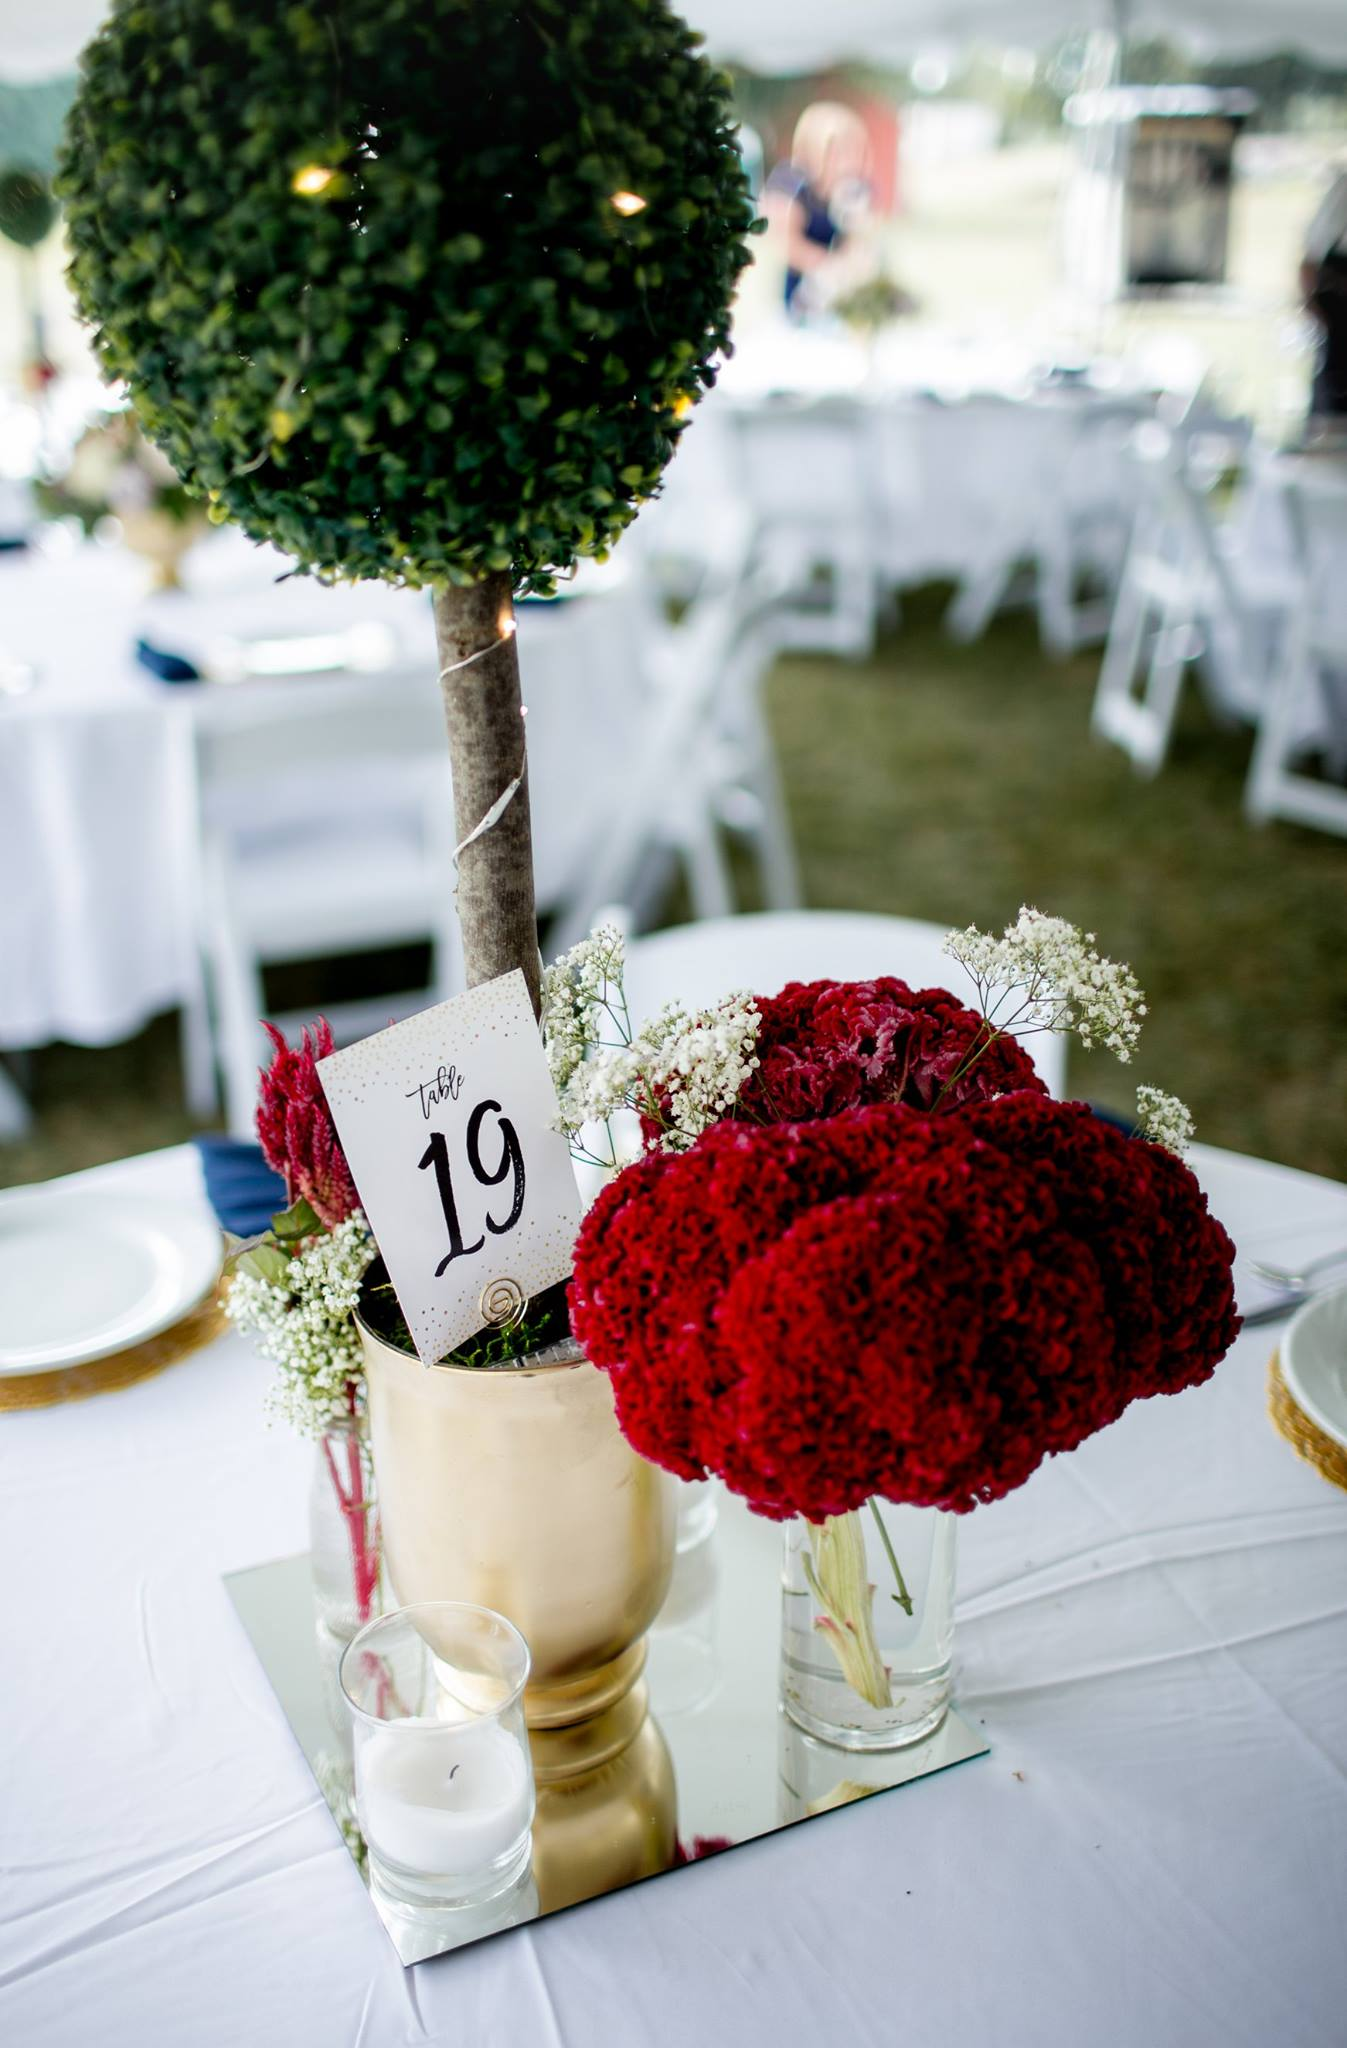 jen & carson   table numbers   photo credit: onethirtynine photography